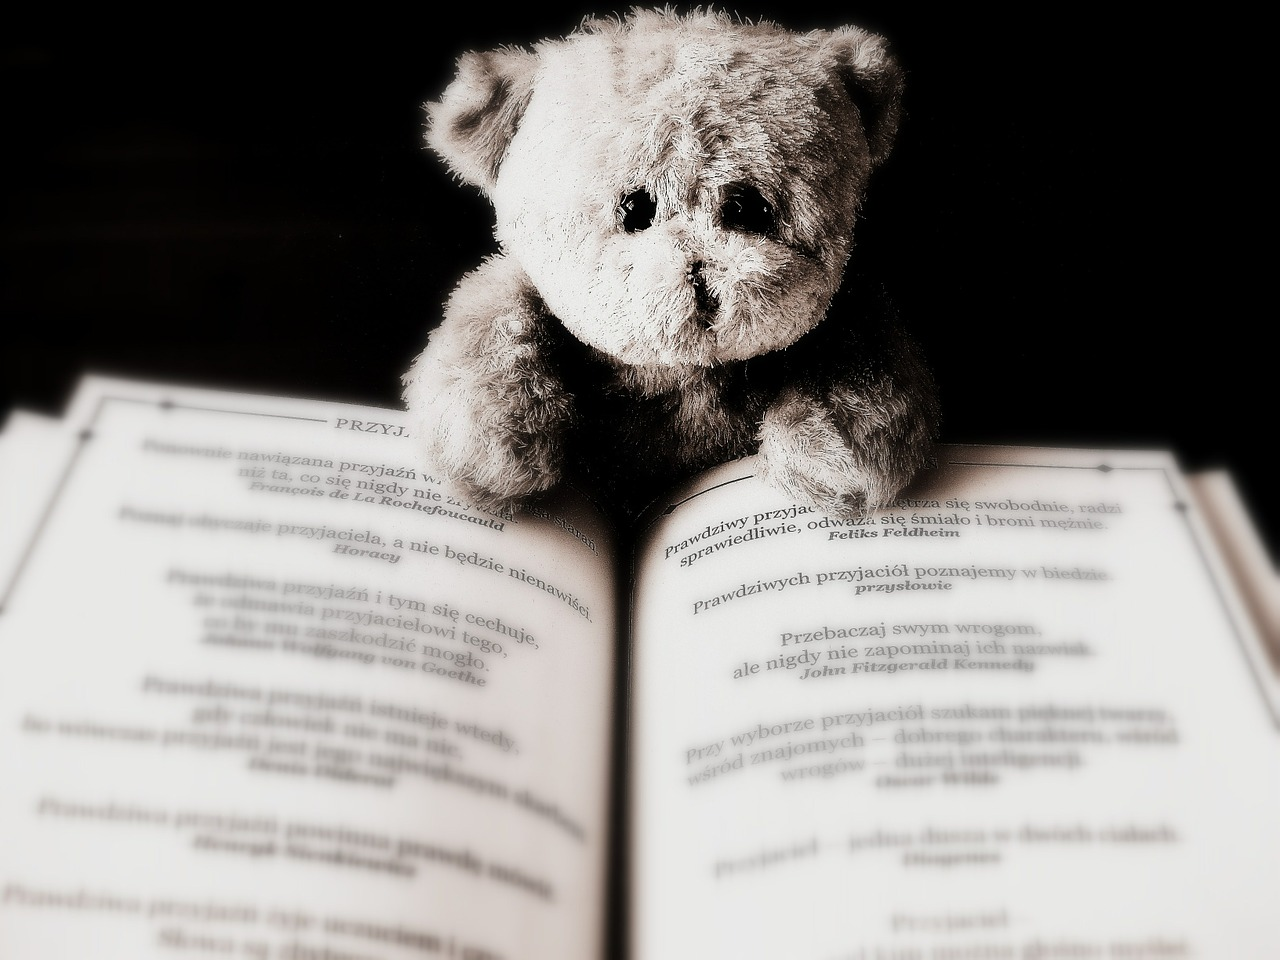 A small teddy bear reading a book.